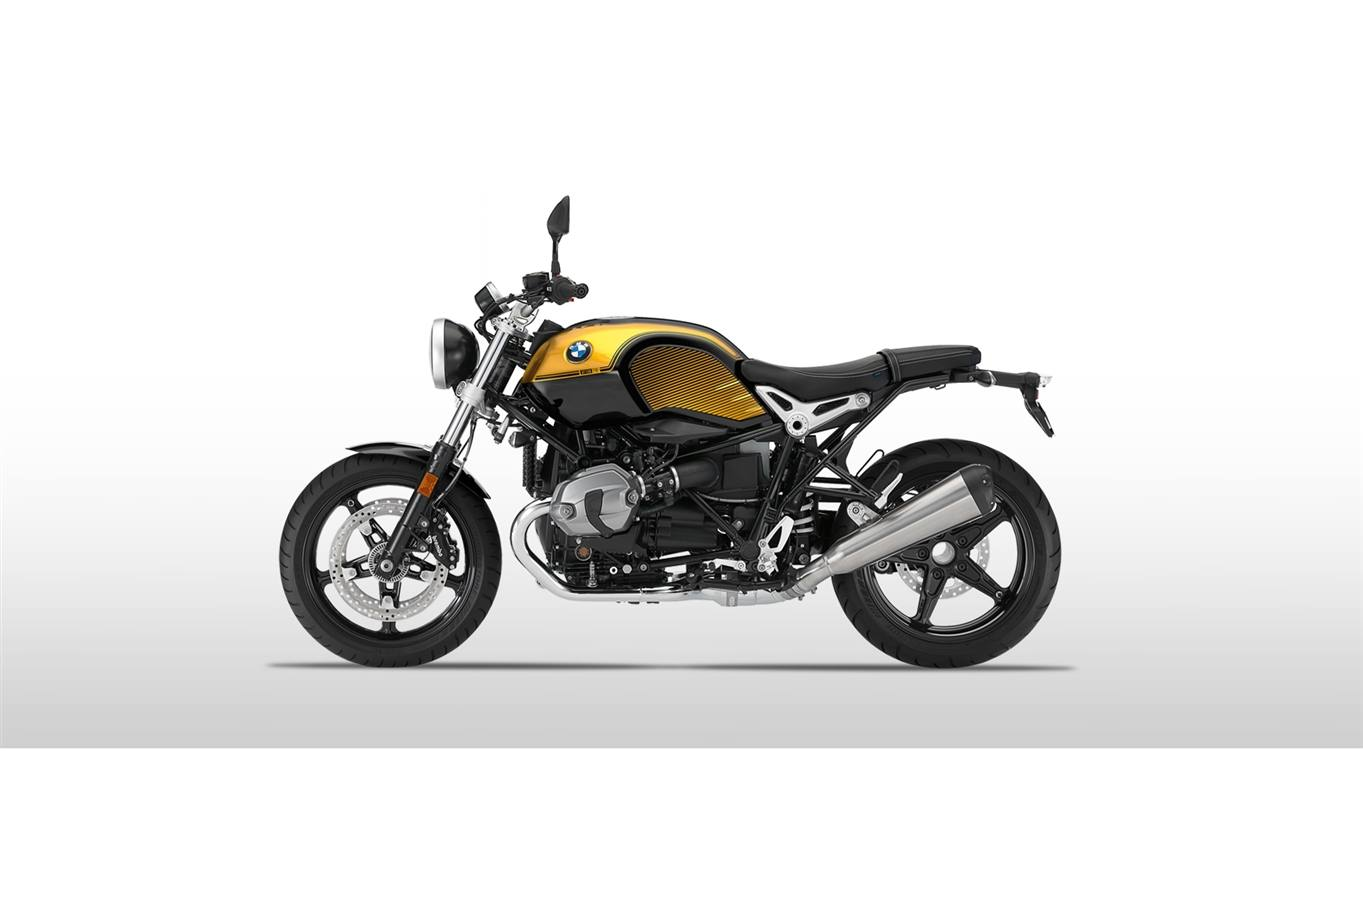 2019 BMW R nineT Pure - Option 719 for sale in Wexford, PA